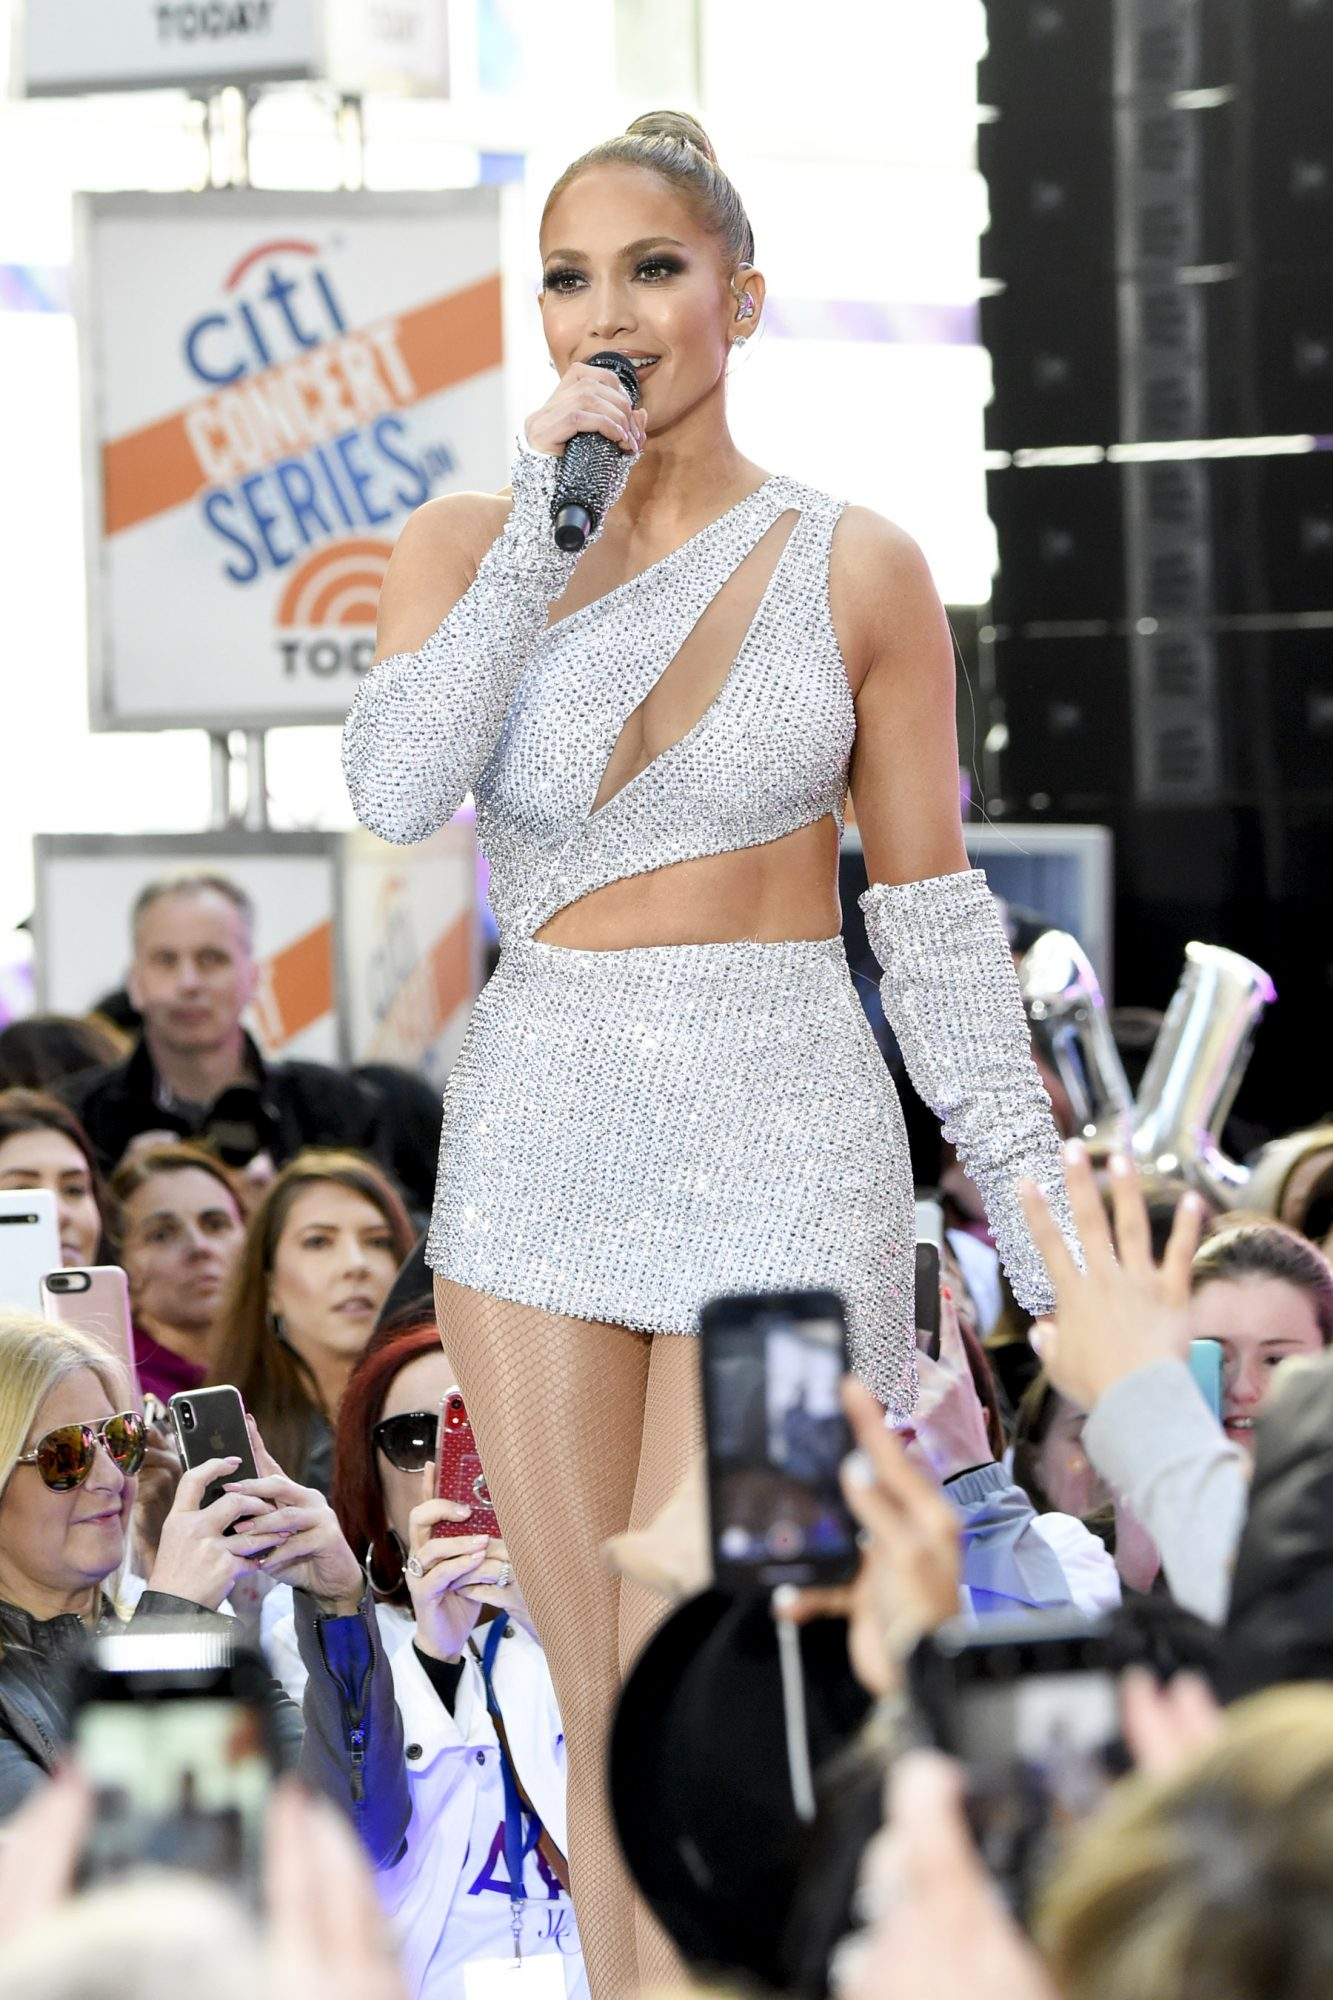 NEW YORK, NEW YORK - MAY 06: Jennifer Lopez performs onstage during Citi Concert Series On TODAY Presents Jennifer Lopez at Rockefeller Plaza on May 06, 2019 in New York City. (Photo by Kevin Mazur/Getty Images for Citi)